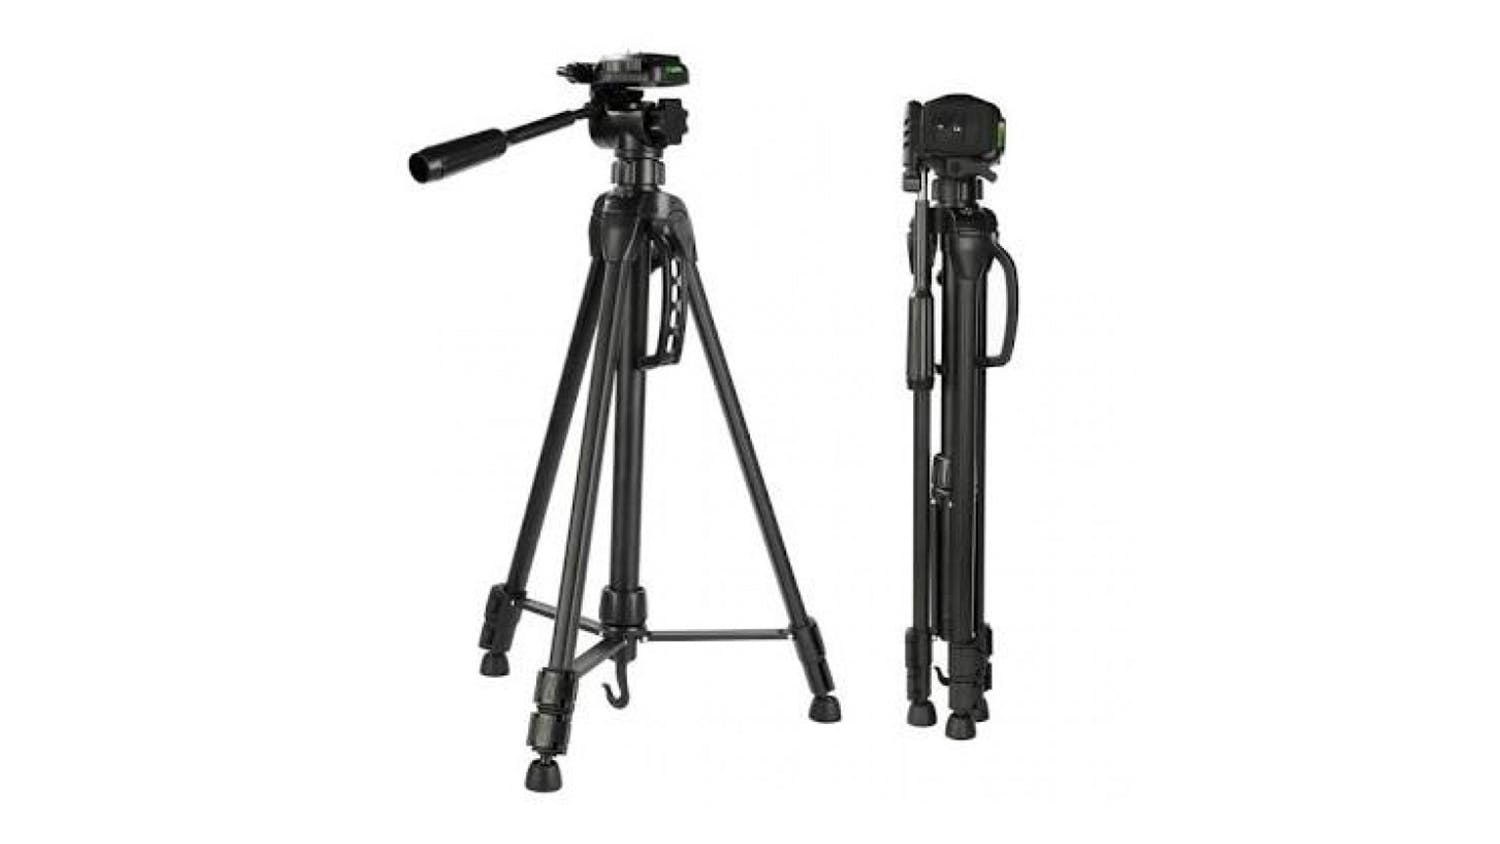 Inca I3530D 3-Way Tripod